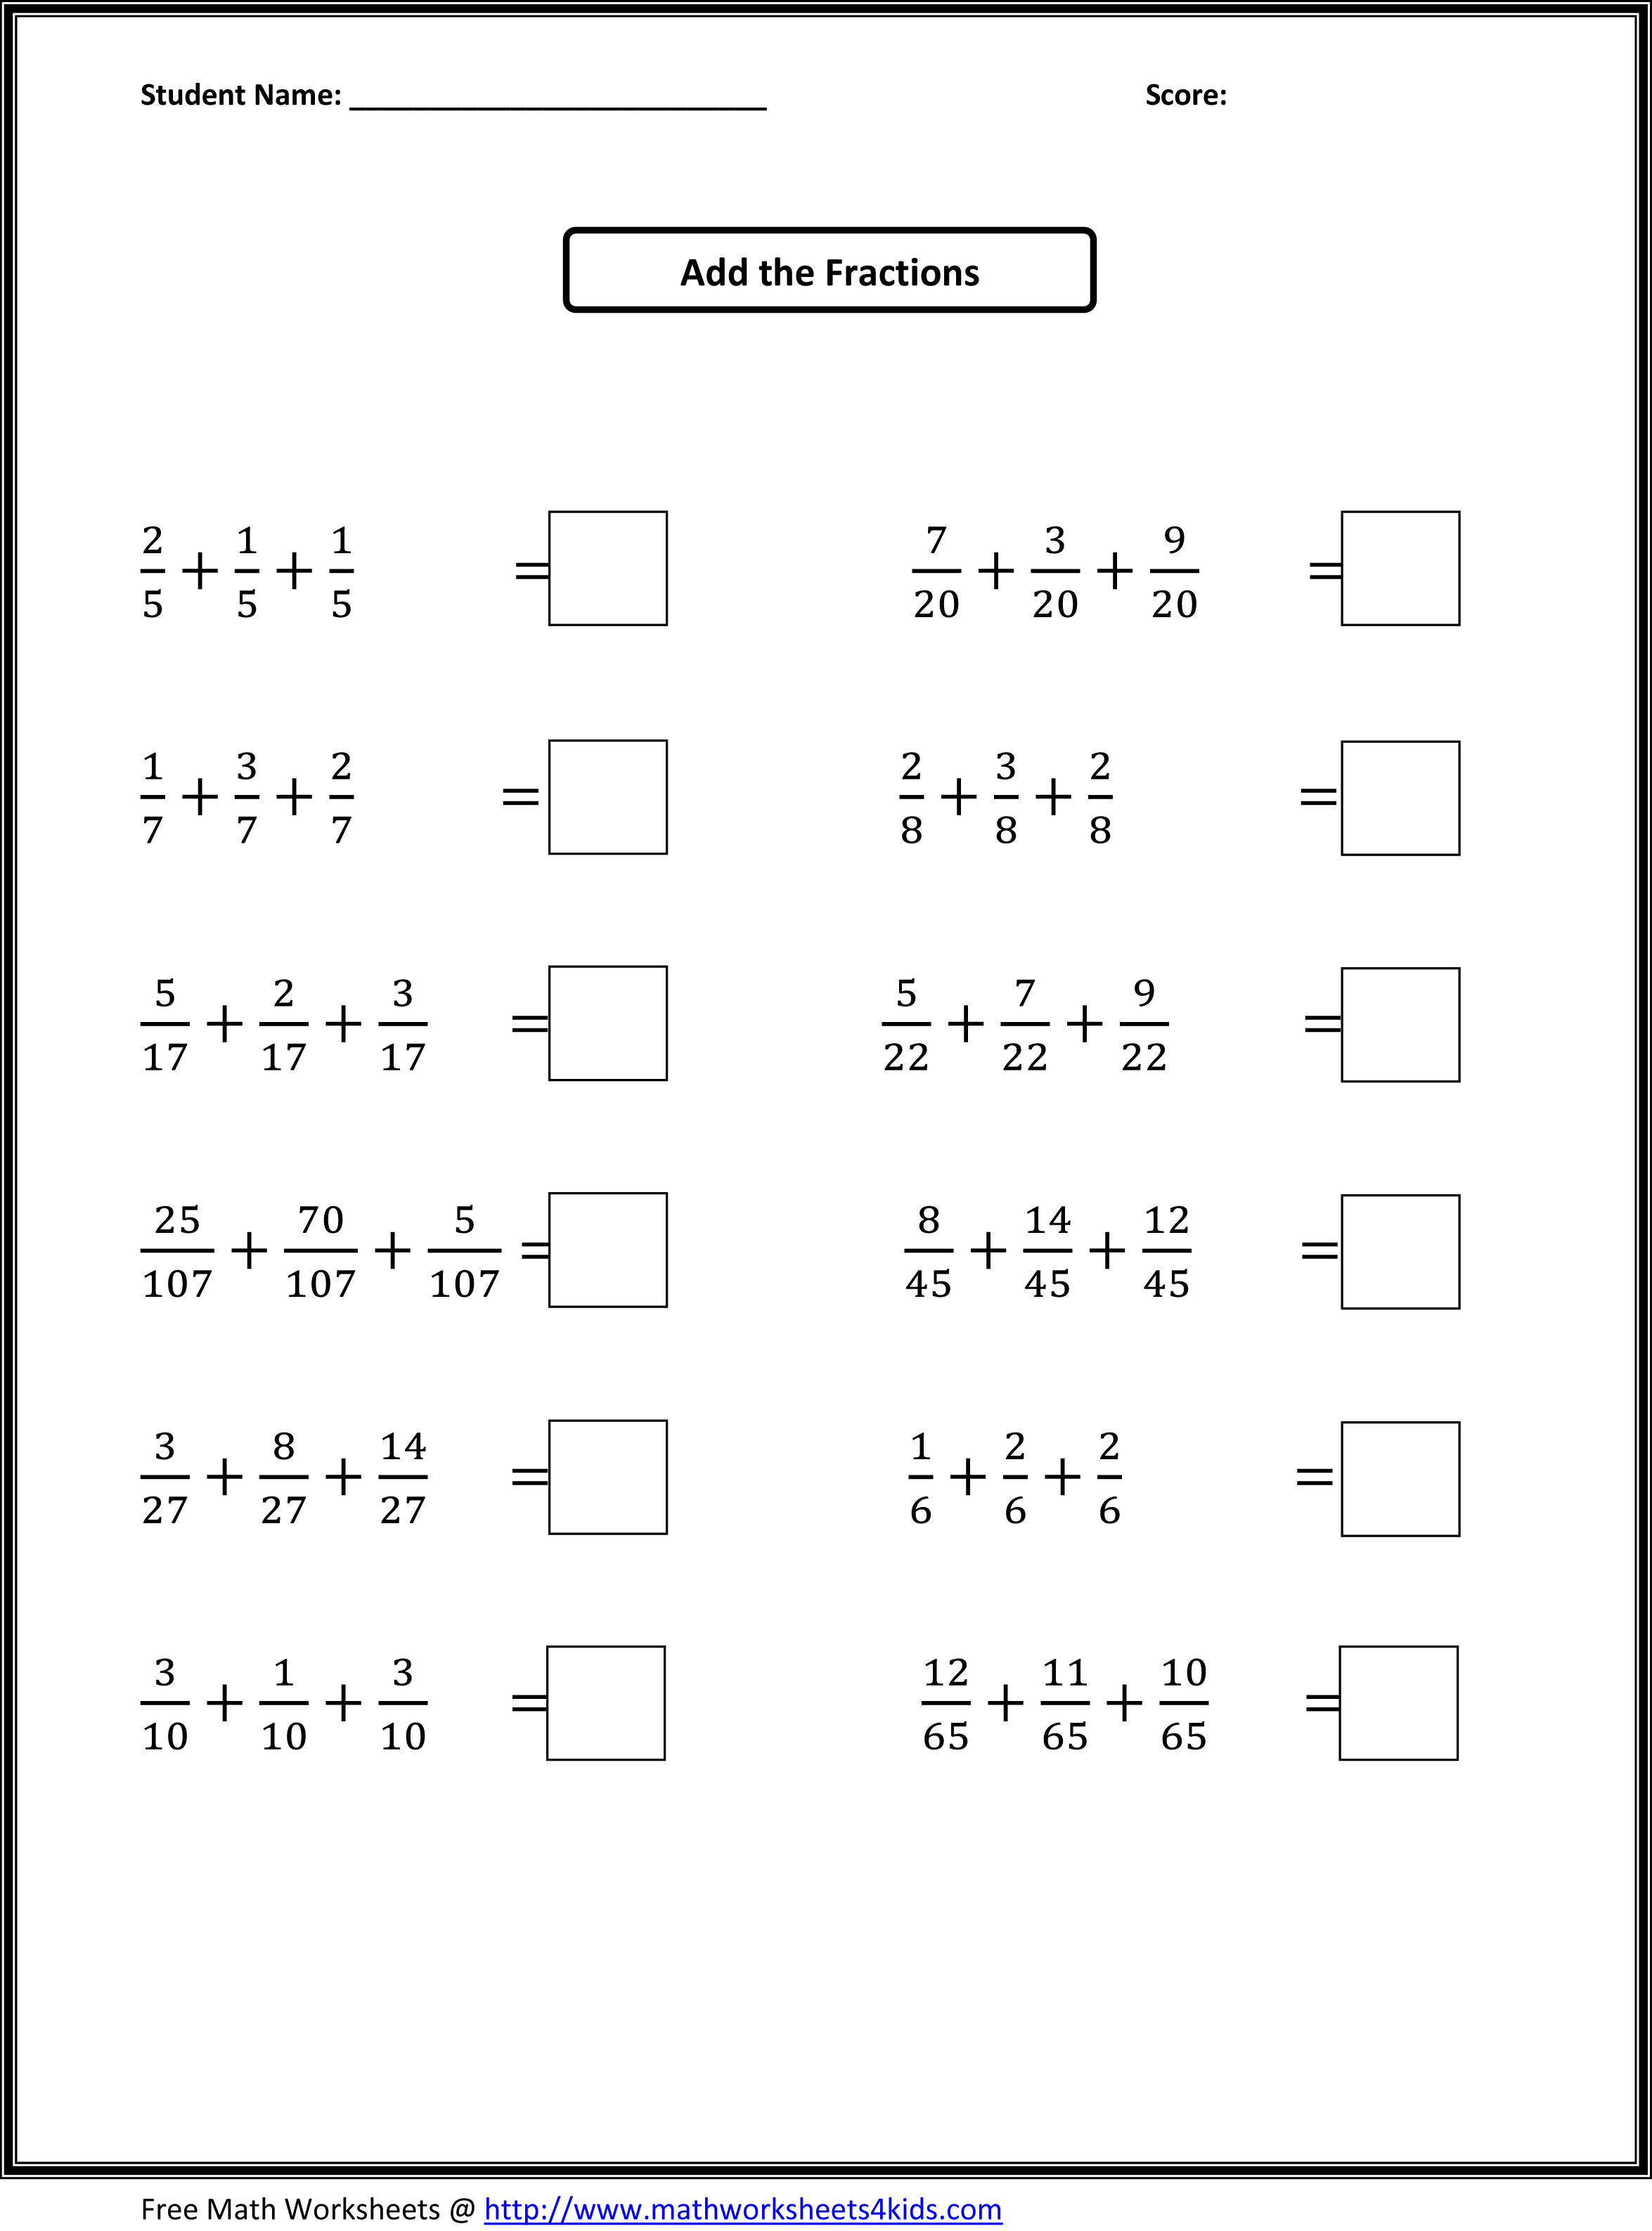 Fraction Worksheets 4th Grade – Ordering Fractions Worksheet 5th Grade